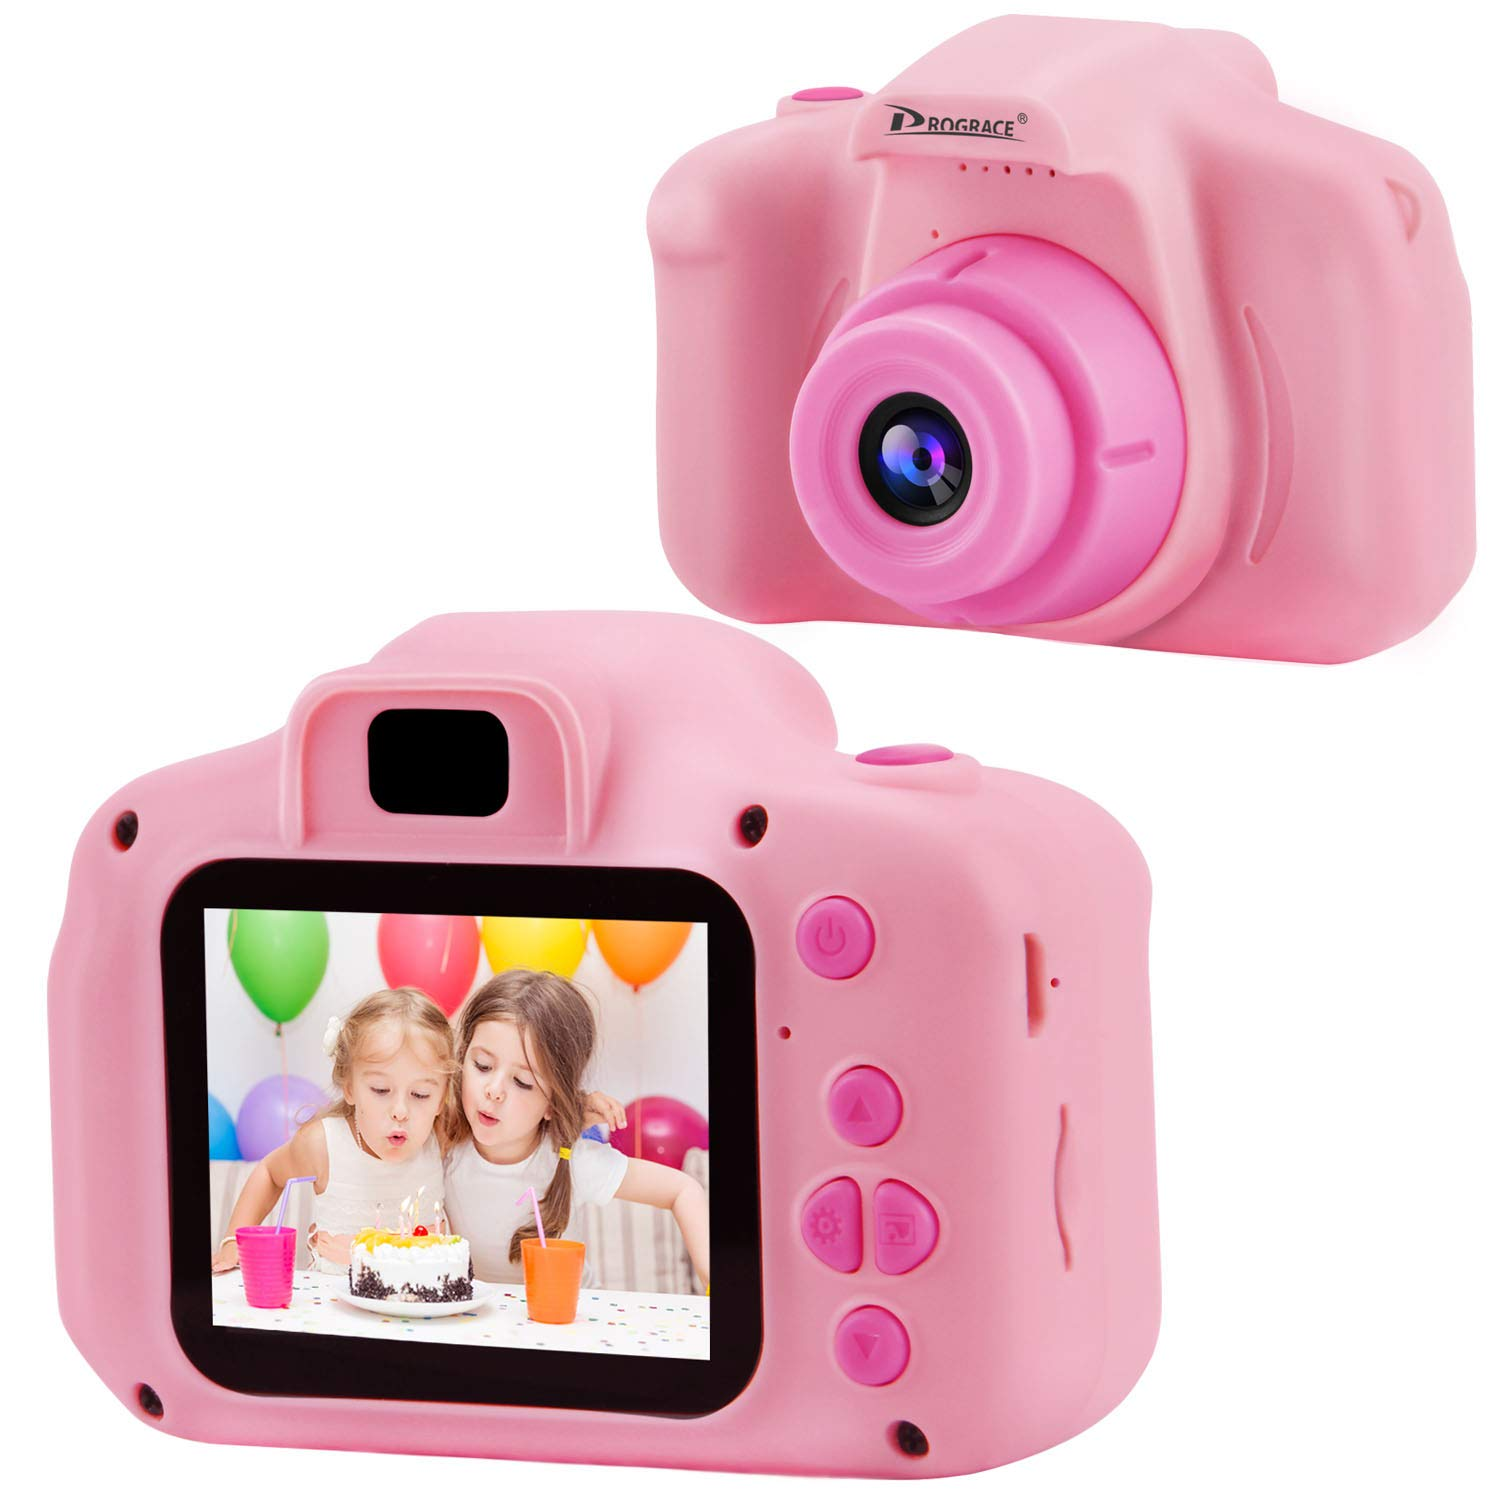 Prograce Kids Camera Children Digital Cameras for Girls Birthday Toy Gifts 4-12 Year Old Kid Action Camera Toddler Video Recorder 1080P IPS 2 Inch by PROGRACE